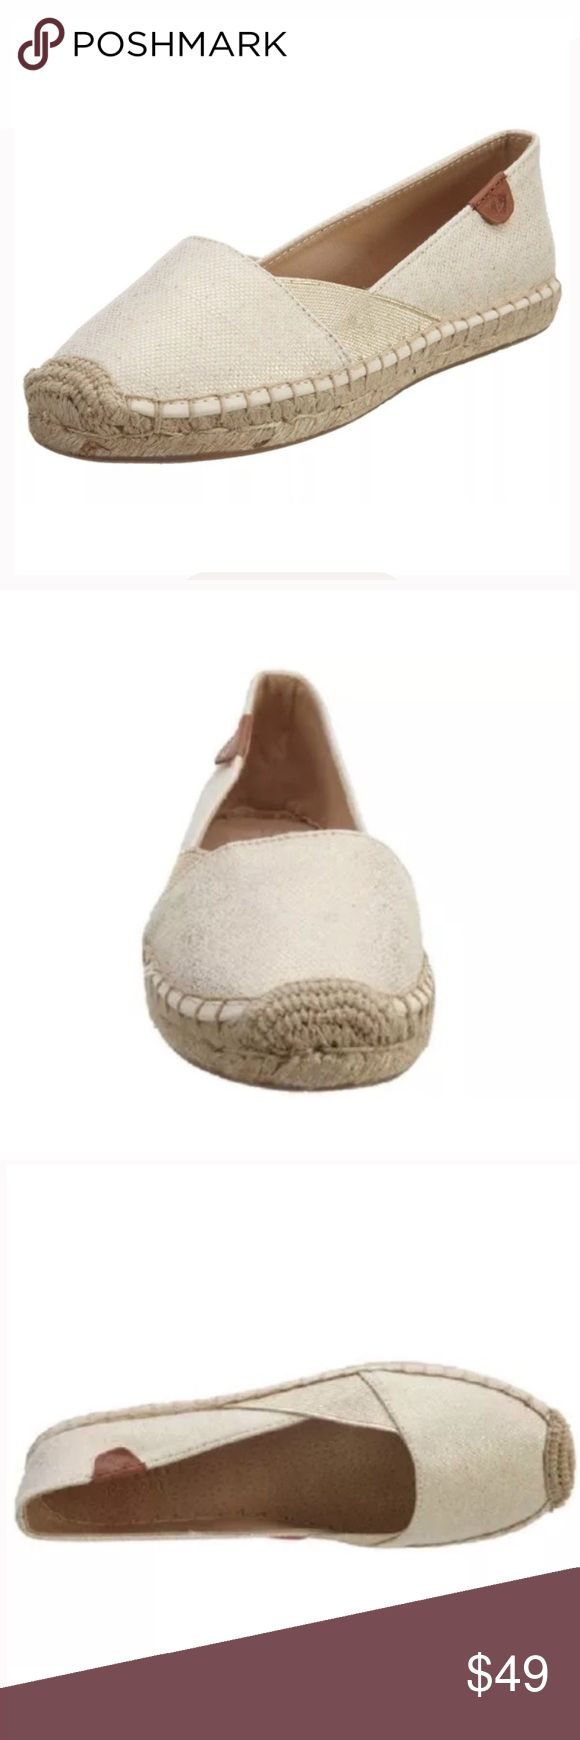 SPERRY TOP SIDER ESPADRILLE KATAMA CAPE GOLD NEW SPERRY TOP SIDER ESPADRILLE KATAMA CAPE GOLD size 10 Sperry Top-Sider Shoes Espadrilles